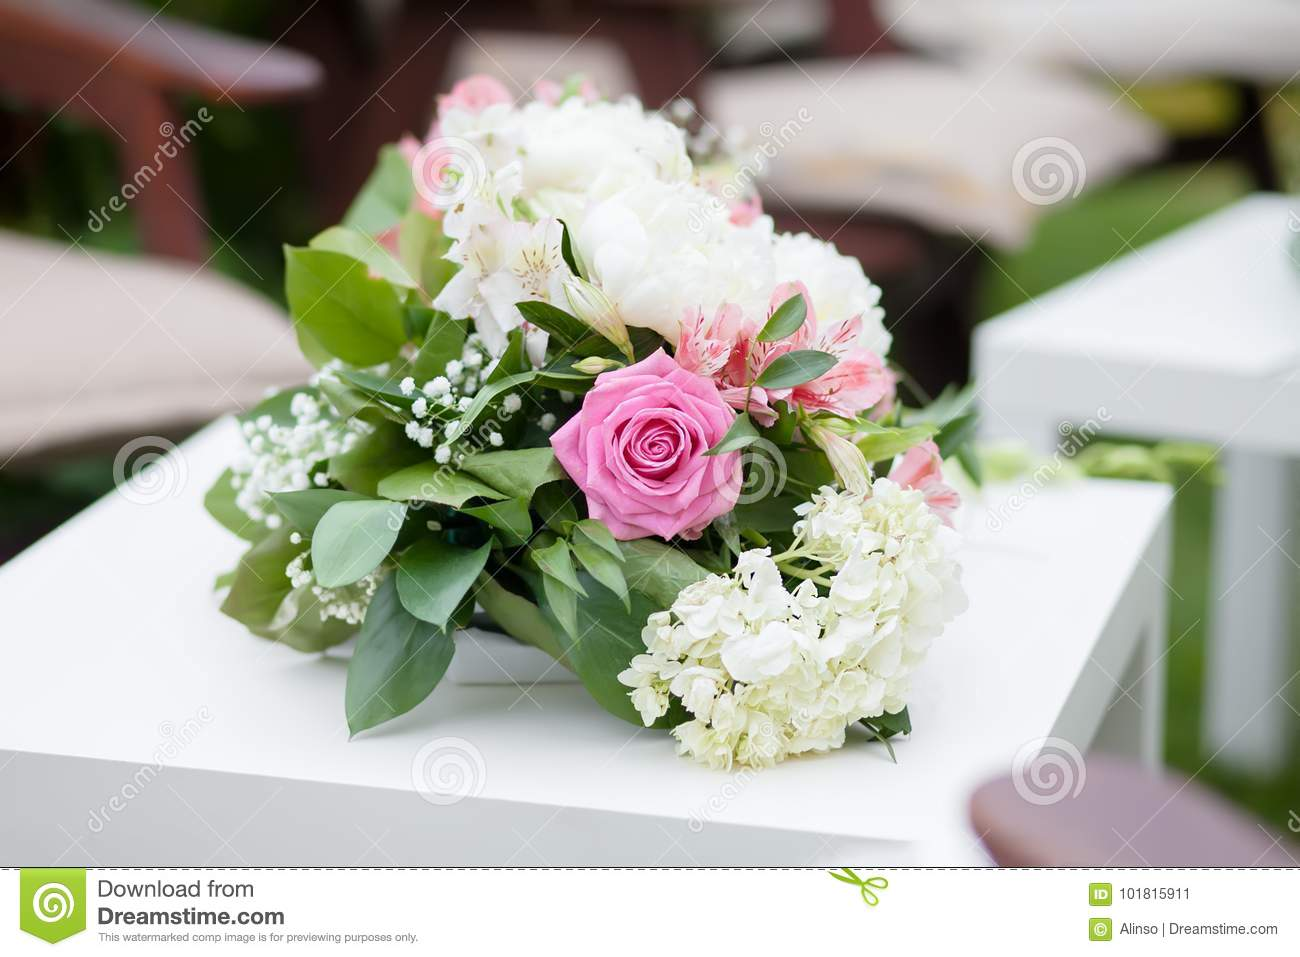 Flower Arrangement With Pink And White Roses Wedding Day Outdoors